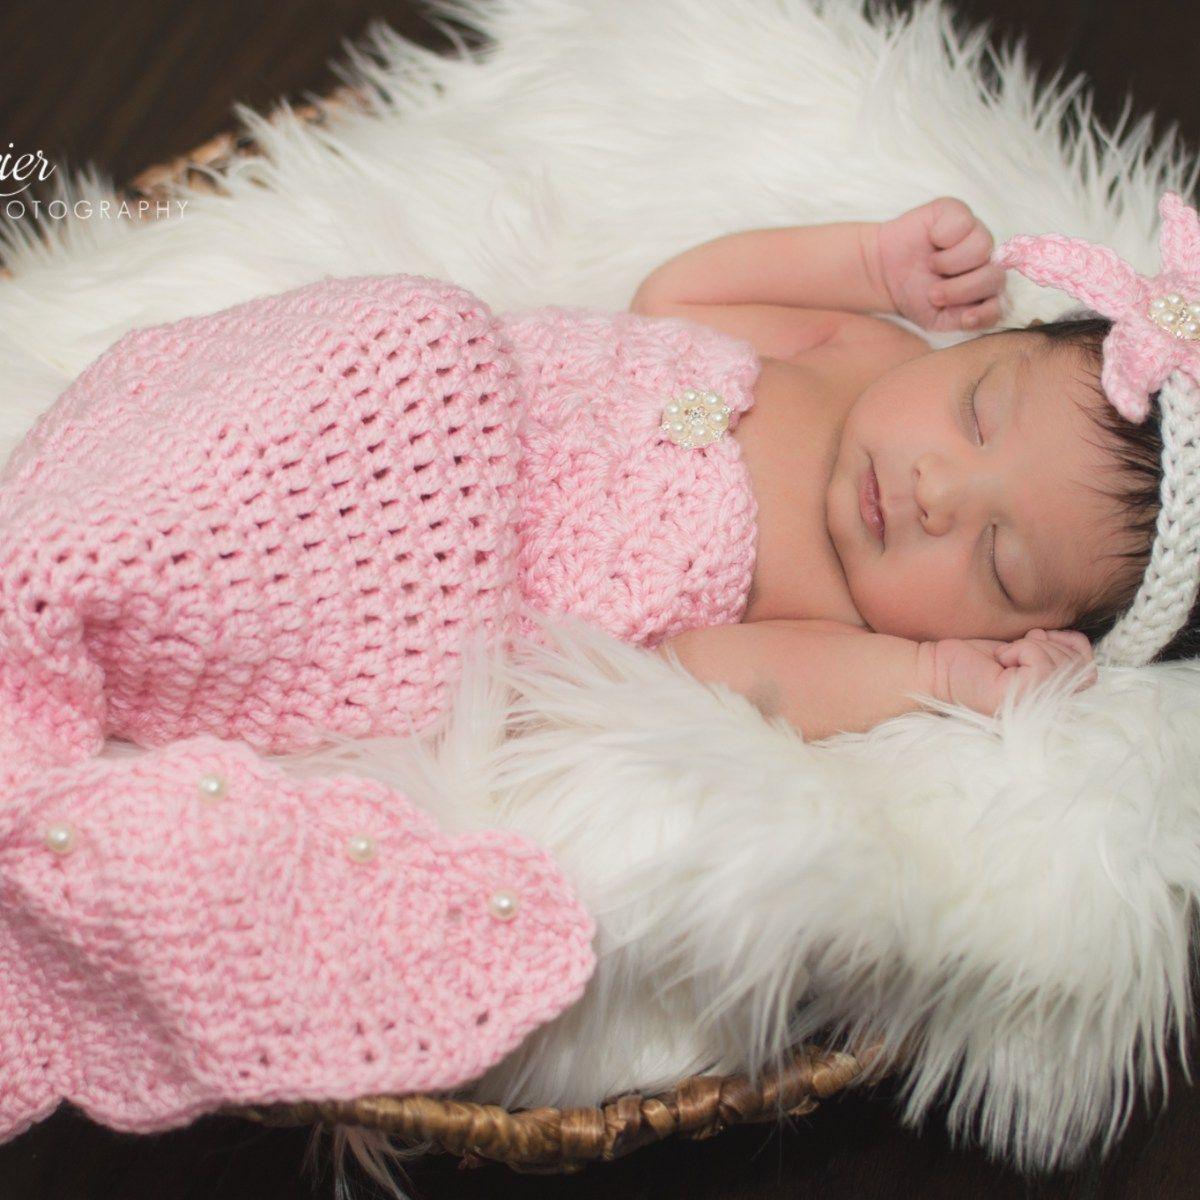 6 BEADED 0-6 mo BABY Crocheted MERMAID SWEETHEART 3 pc set PHOTO PROP newborn